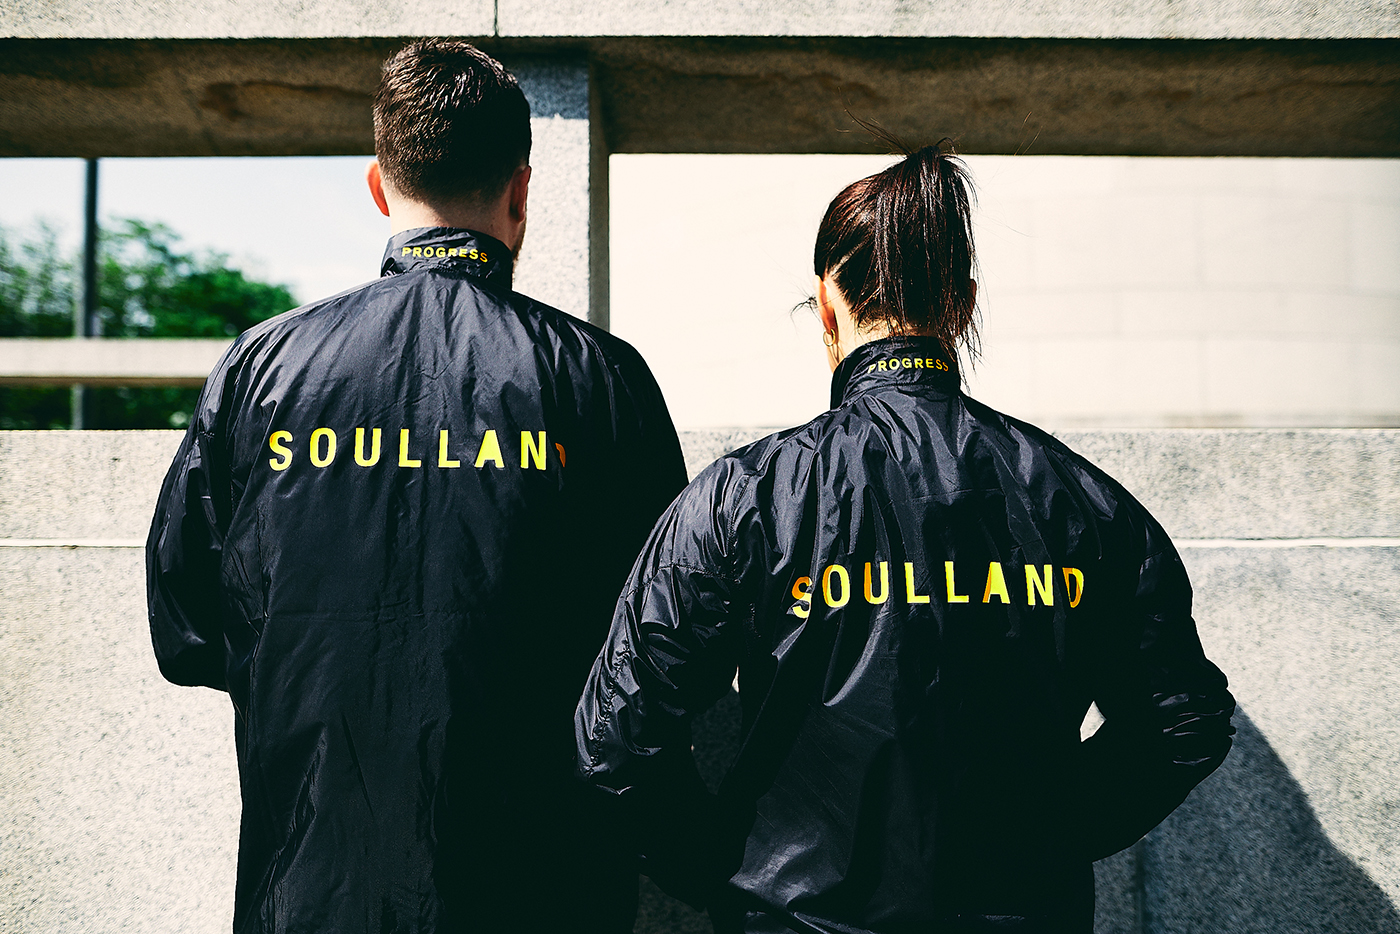 Soulland x 66°NORTH x Queens Running Team